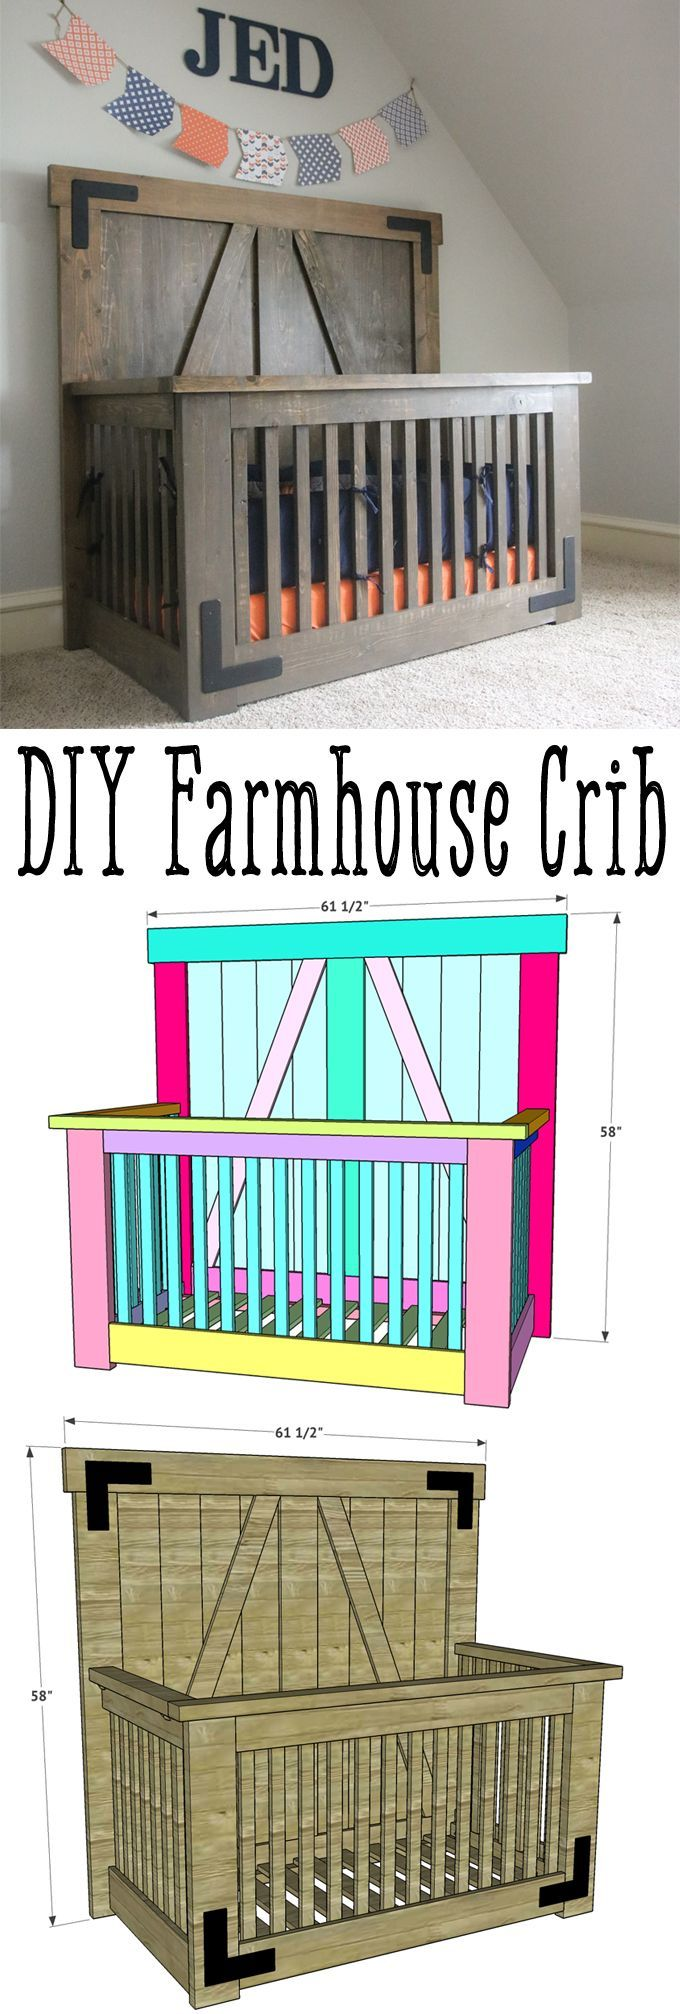 DIY Farmhouse Crib – Free Tutorial and Plans – Shanty 2 Chic